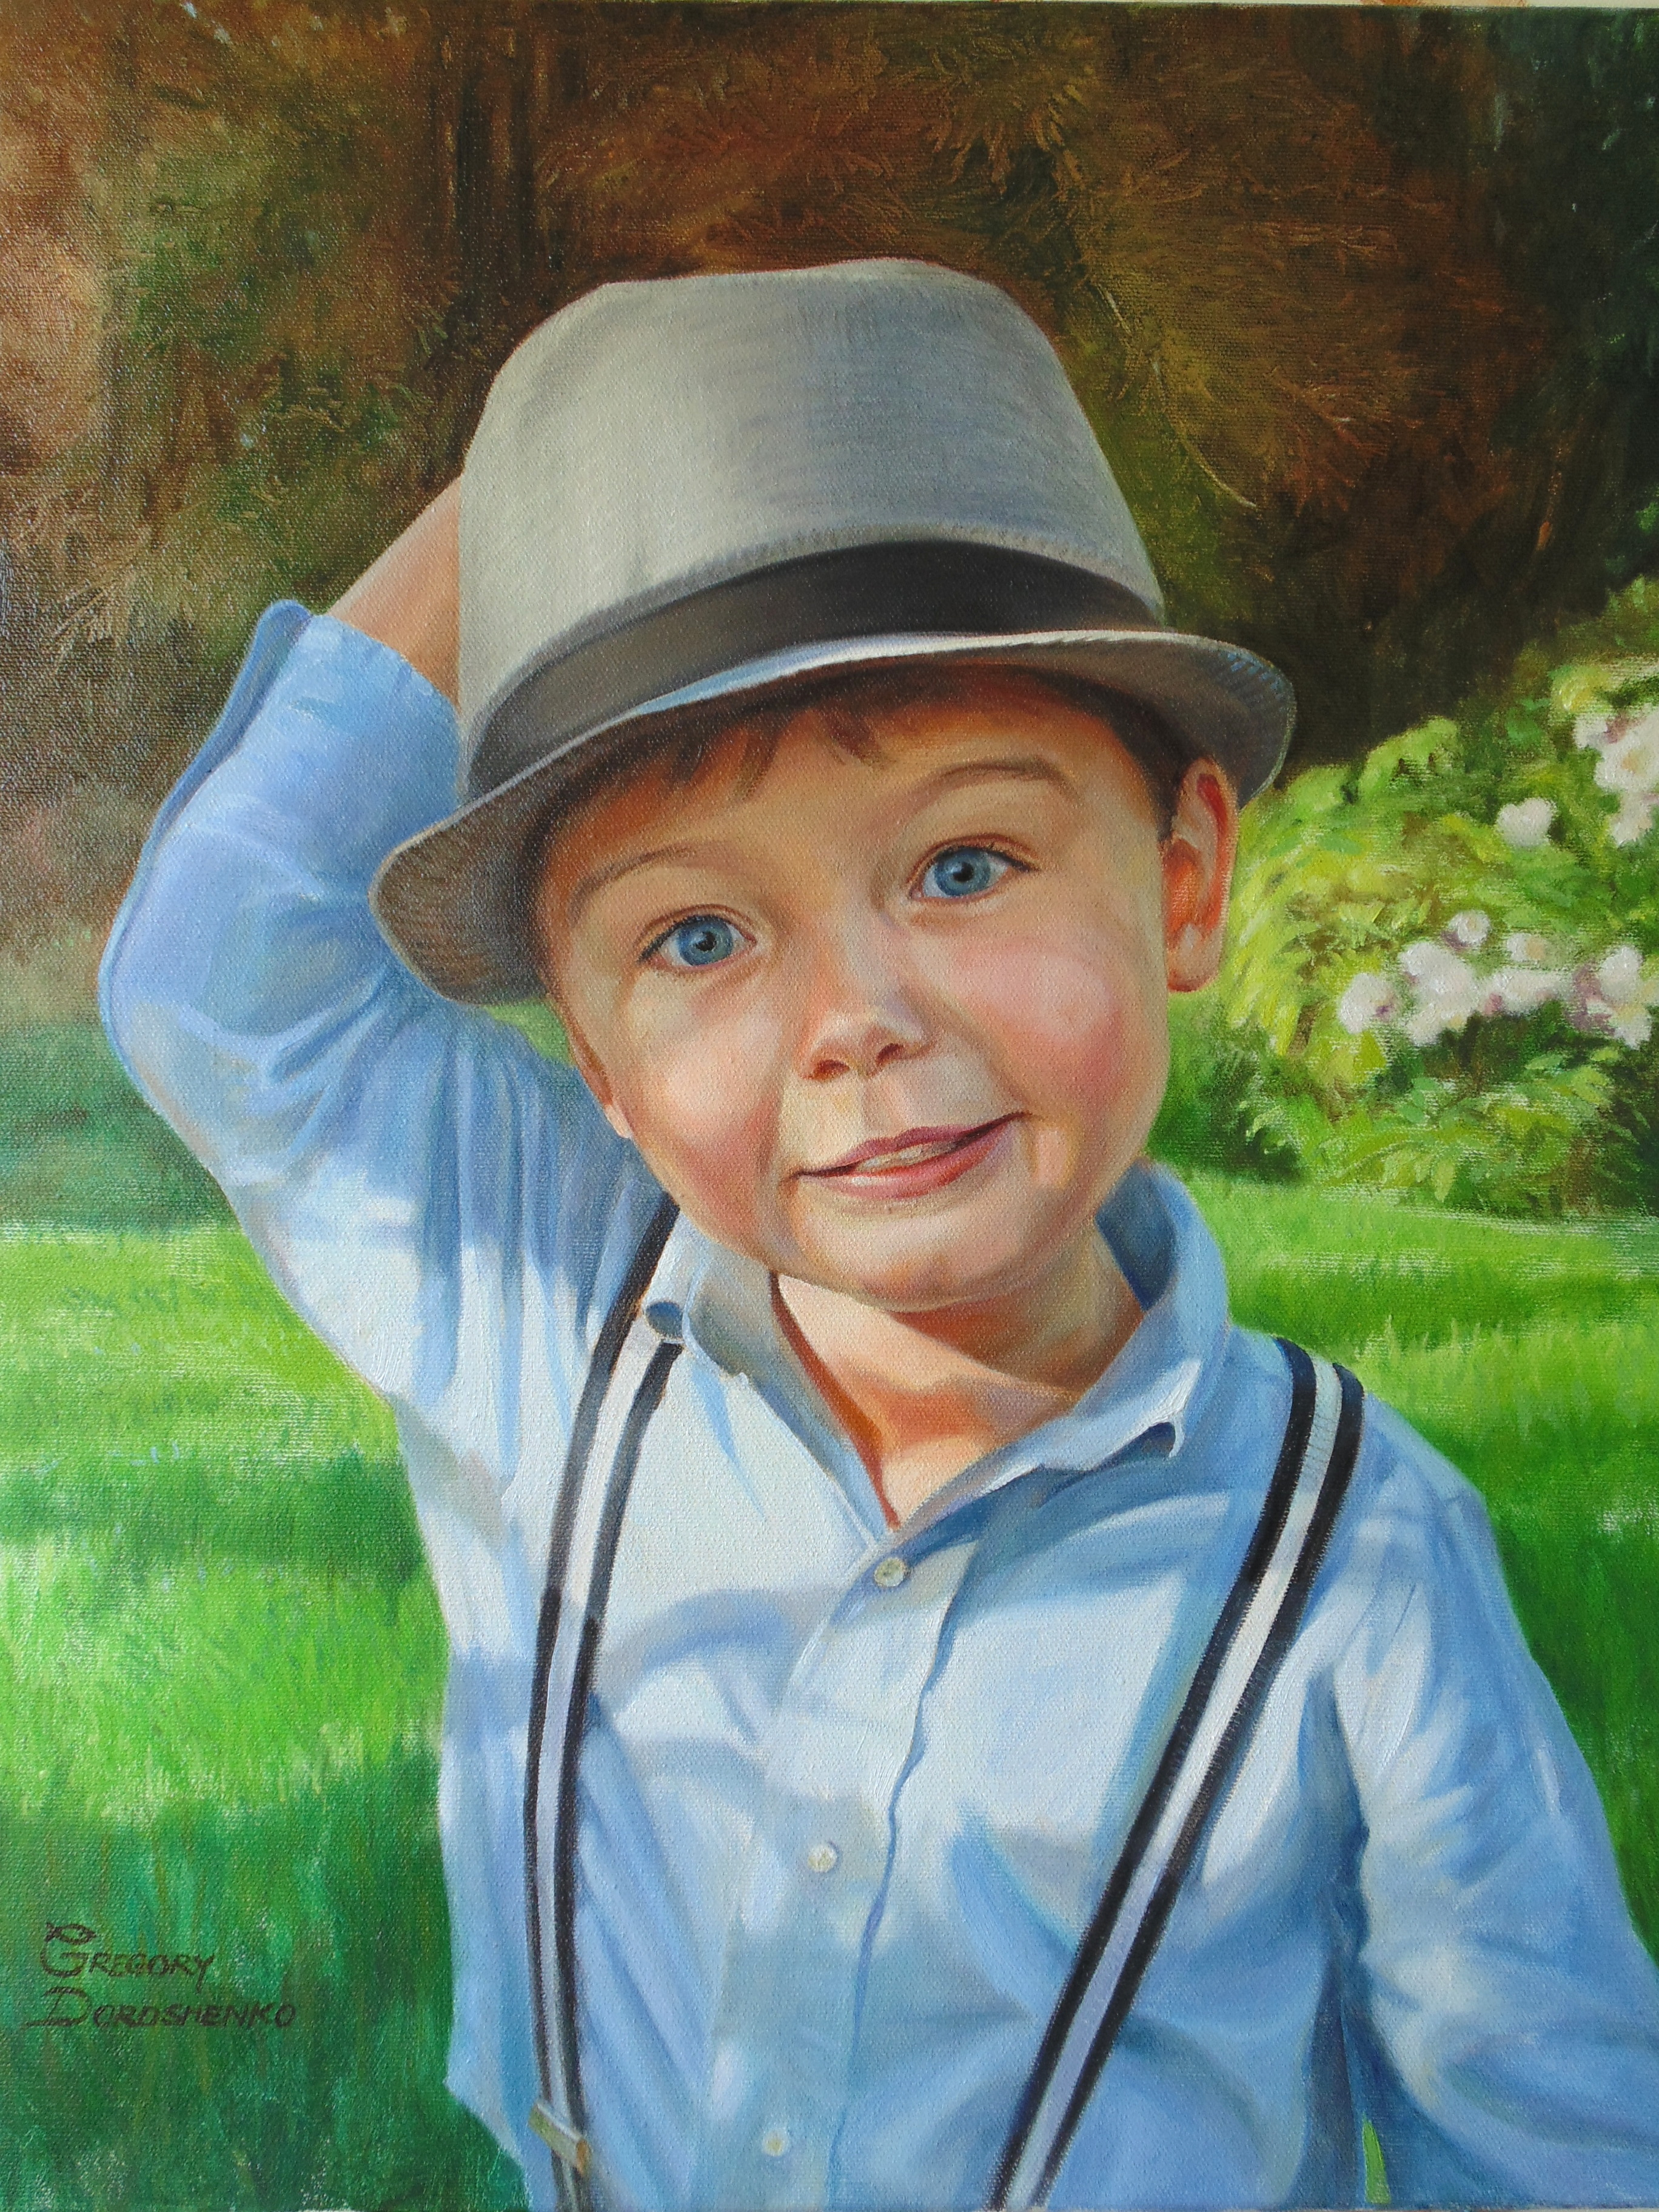 Portrait of English Boy. Oil on Canvas